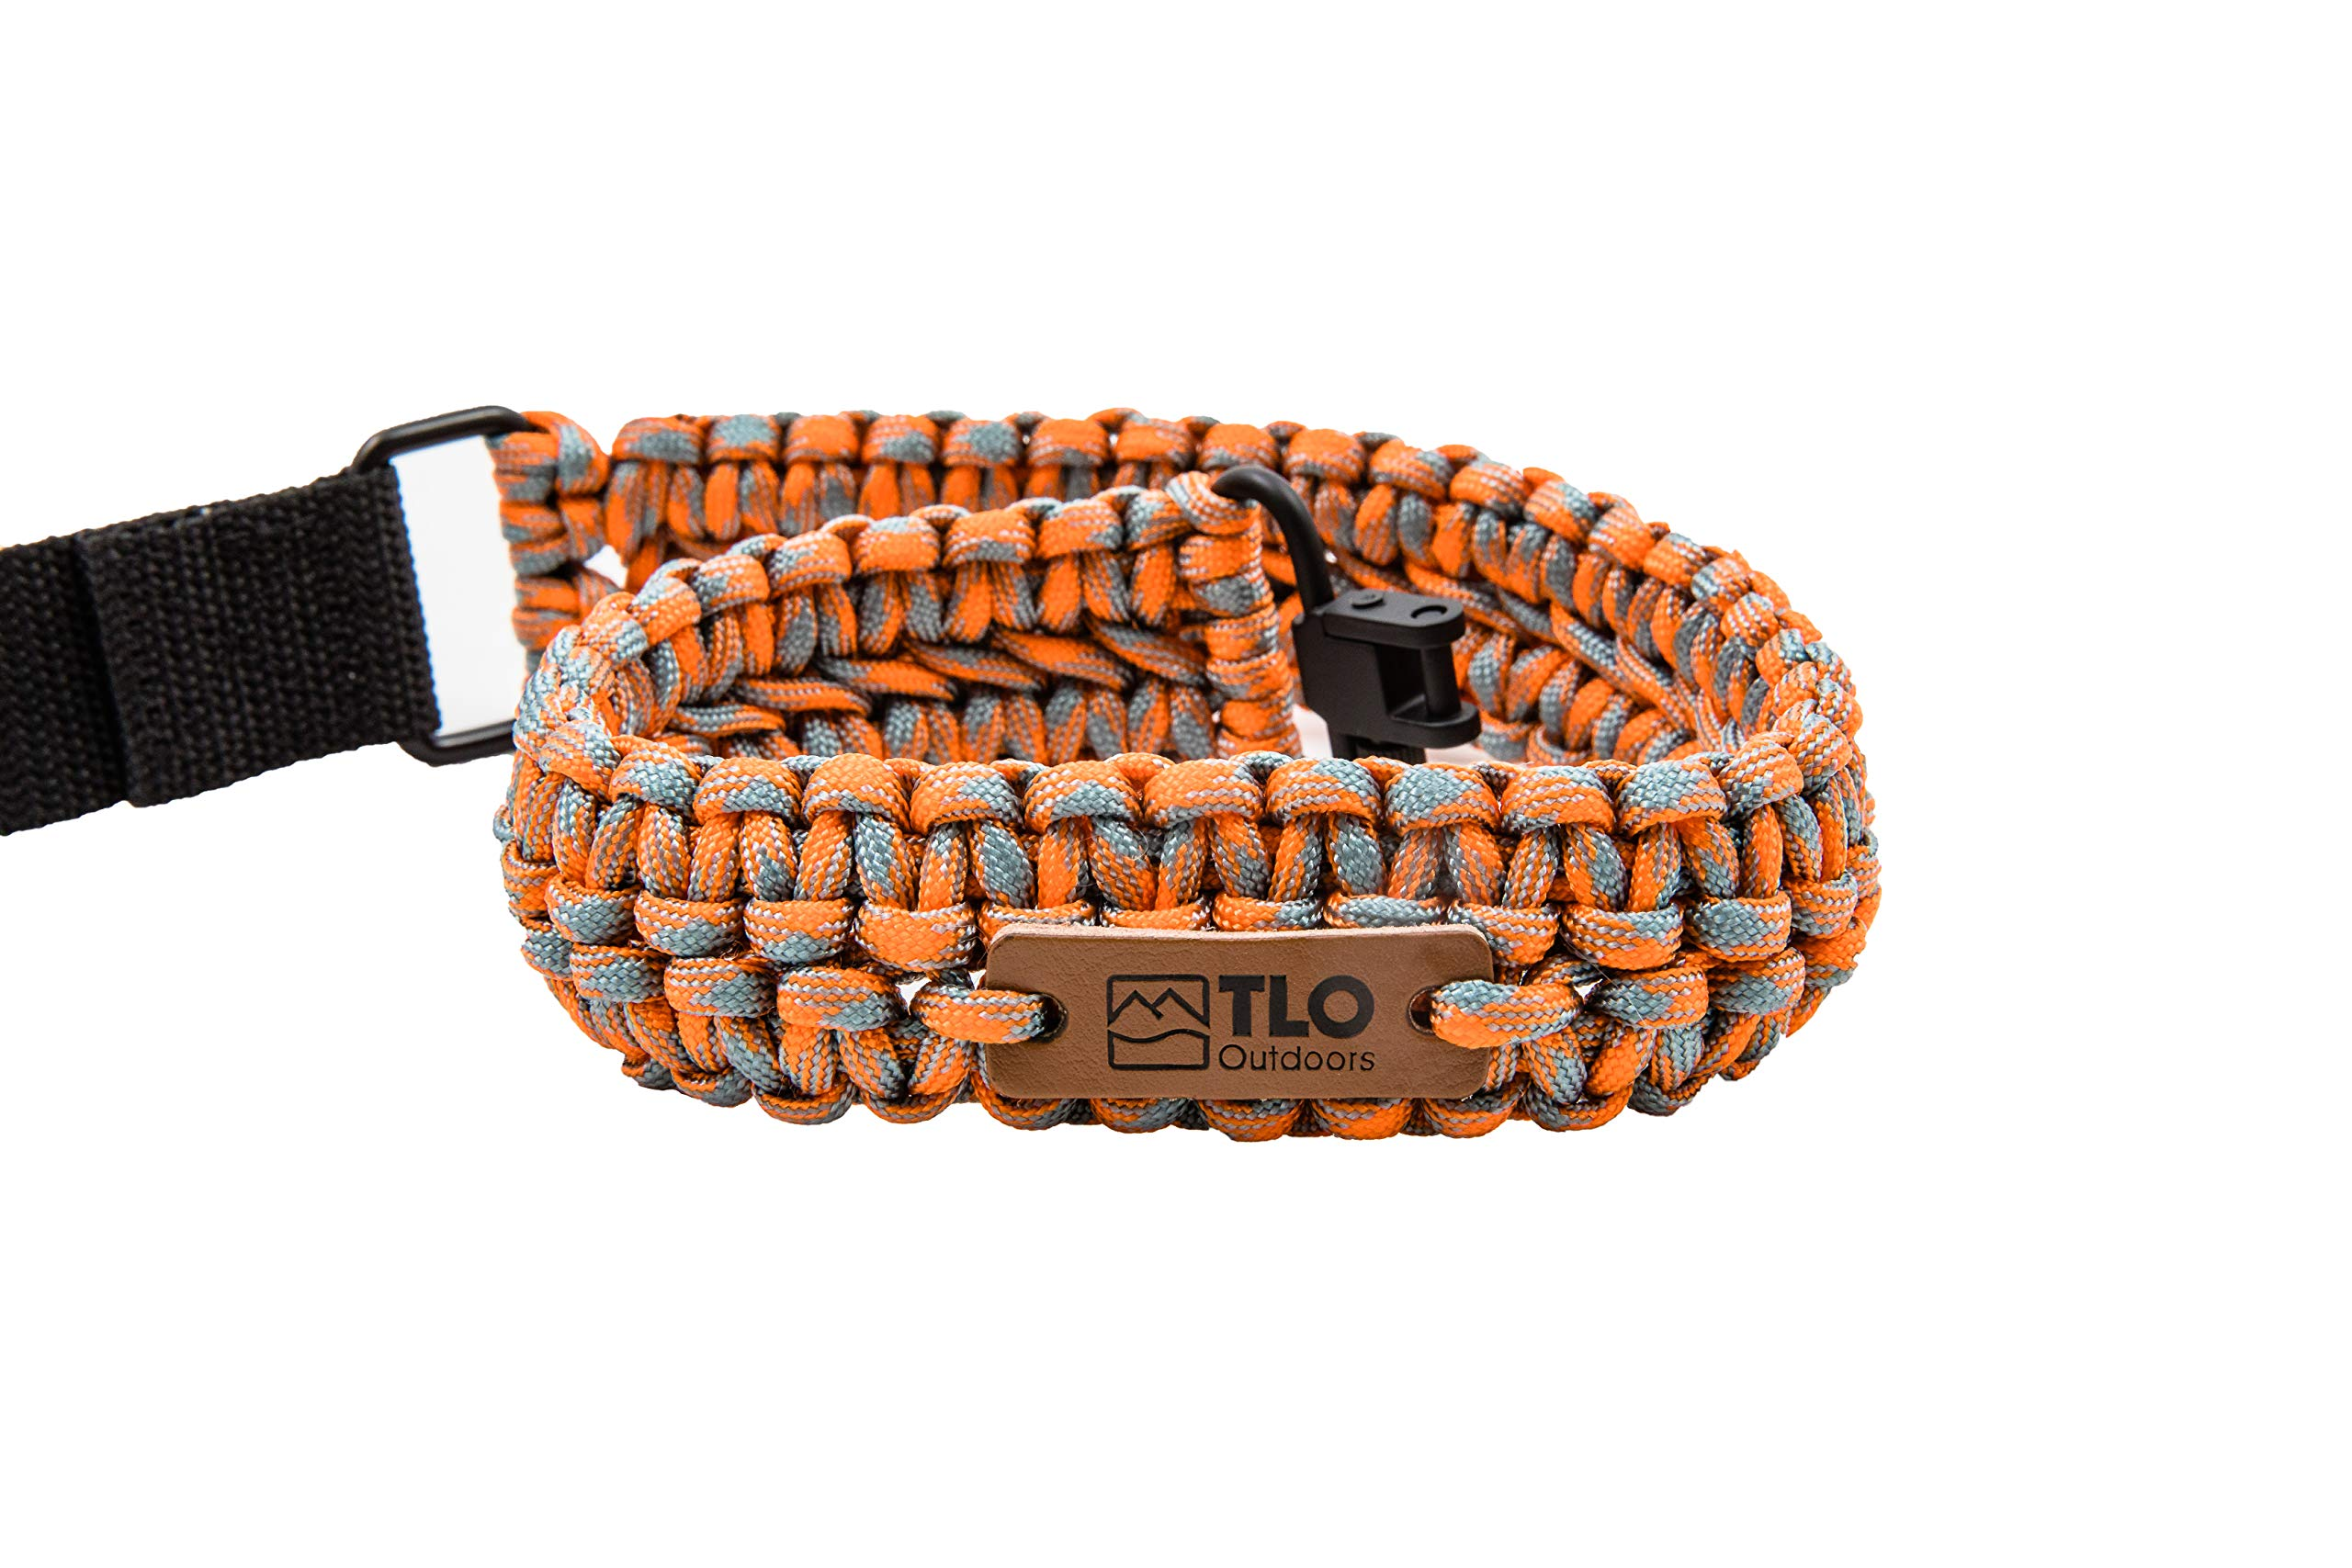 TLO Outdoors Paracord Gun Sling - Adjustable 2-Point Paracord Sling Rifle, Shotgun Crossbows (550 Rated Nylon, Kernmantle Paracord, Extra Wide, Sunset Orange) by TLO Outdoors